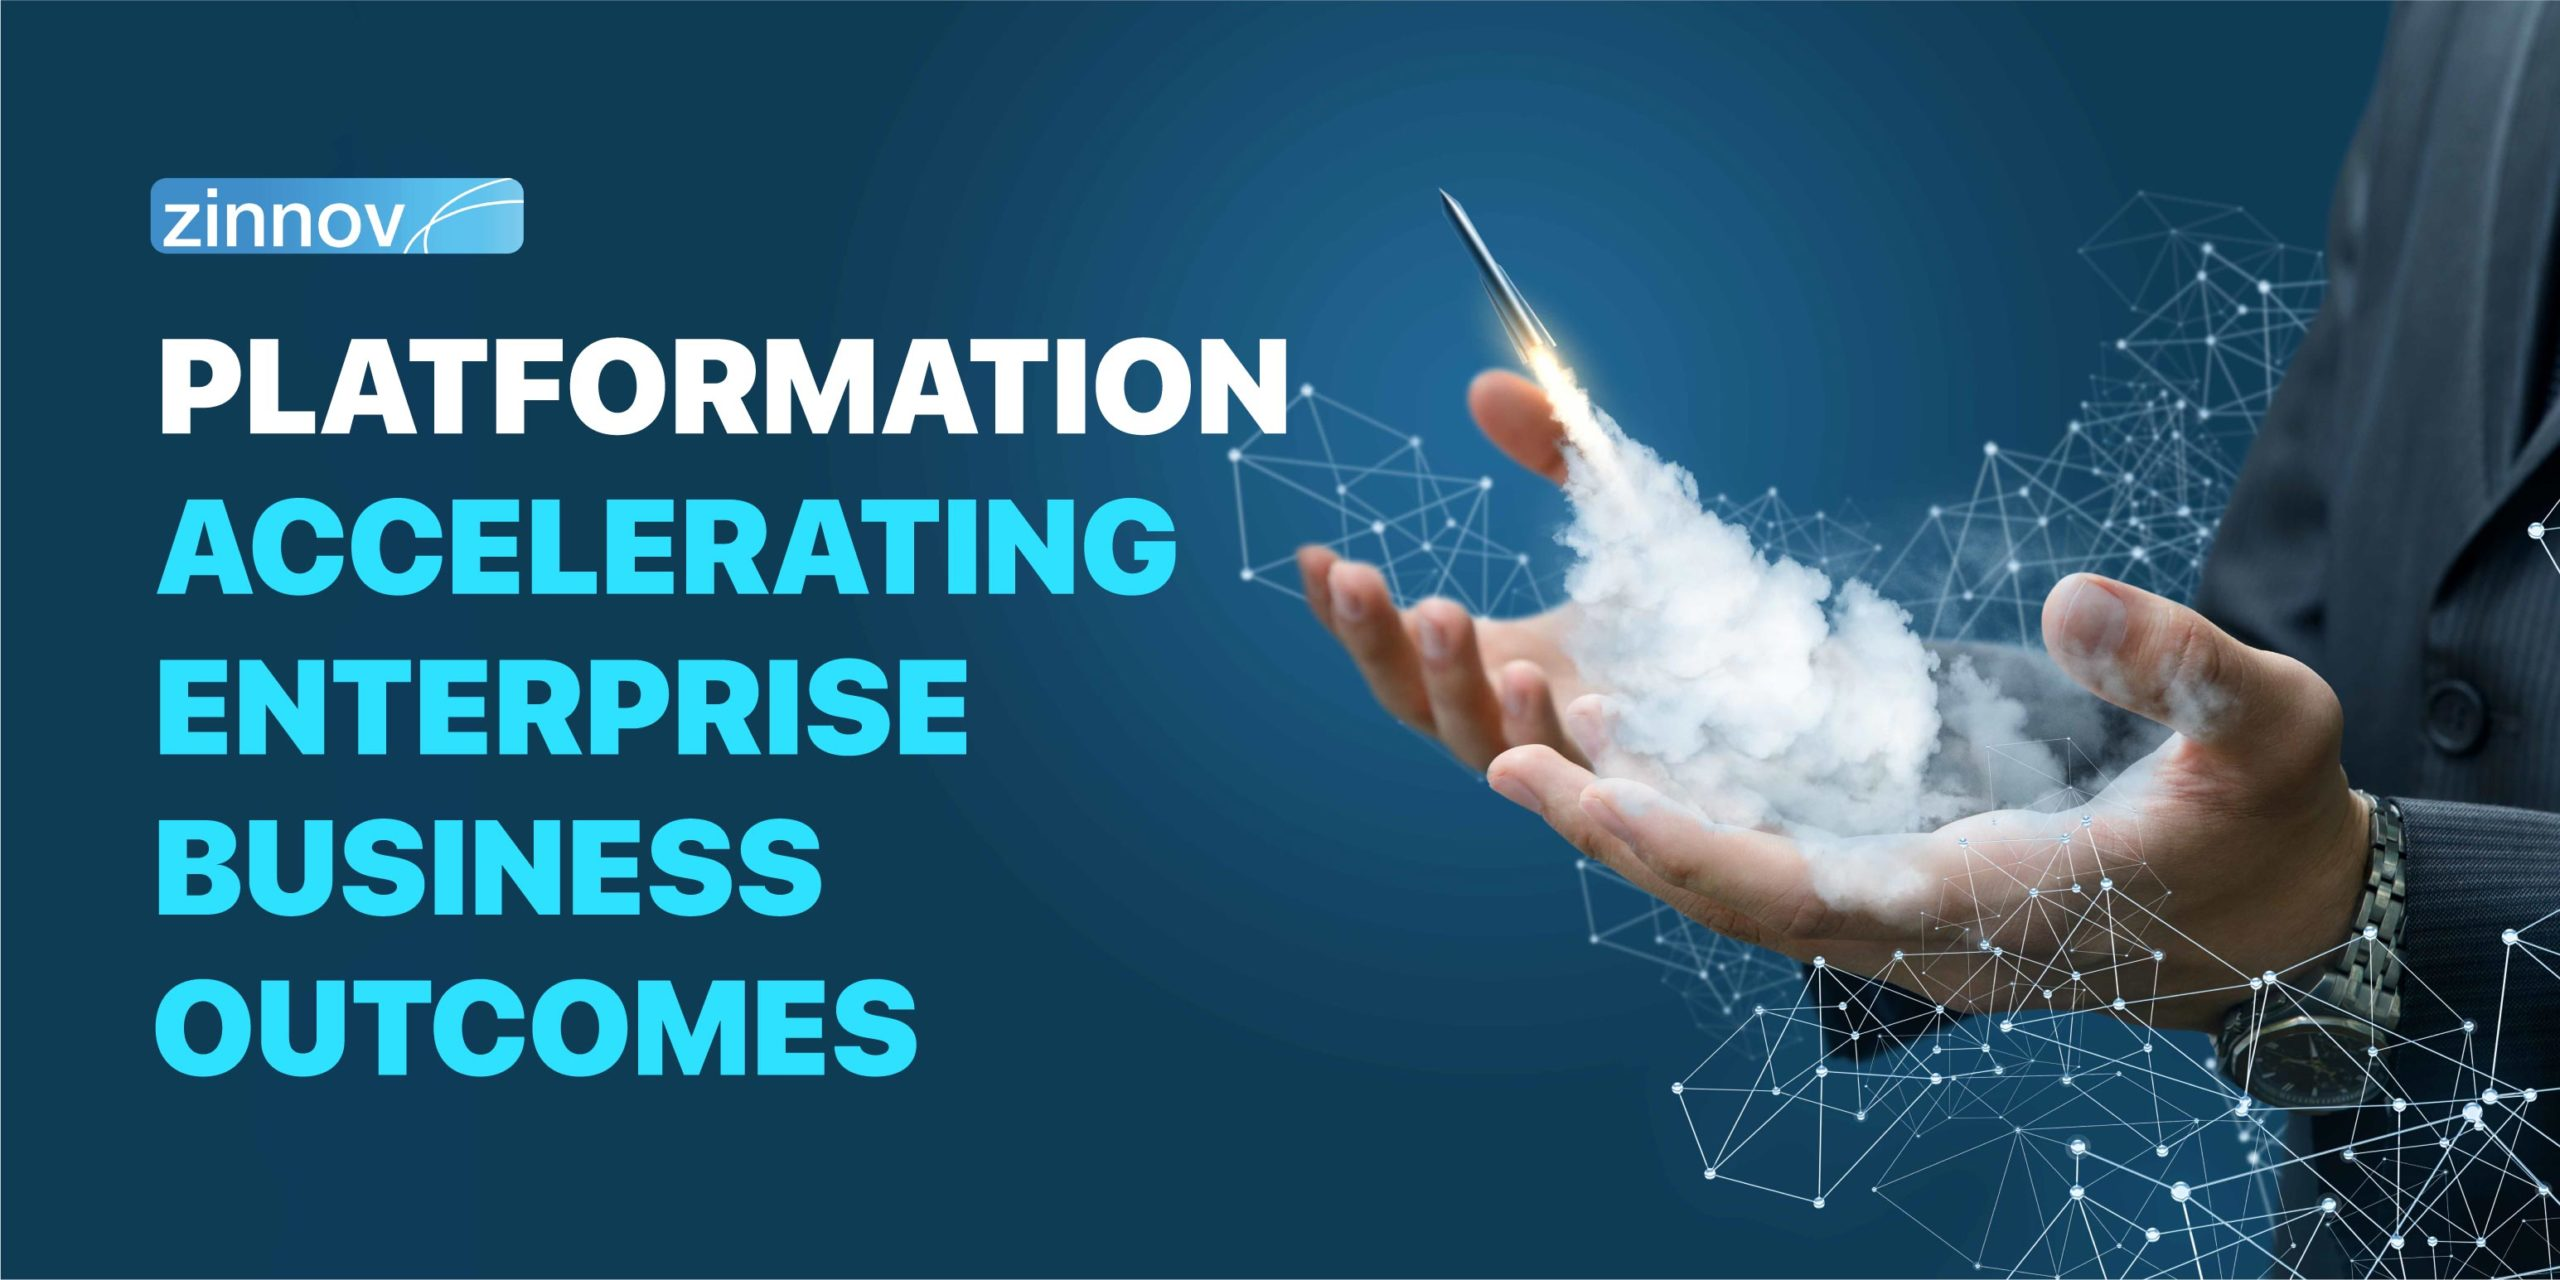 Platformation – The Next Evolutionary Step In The Enterprise Growth Story